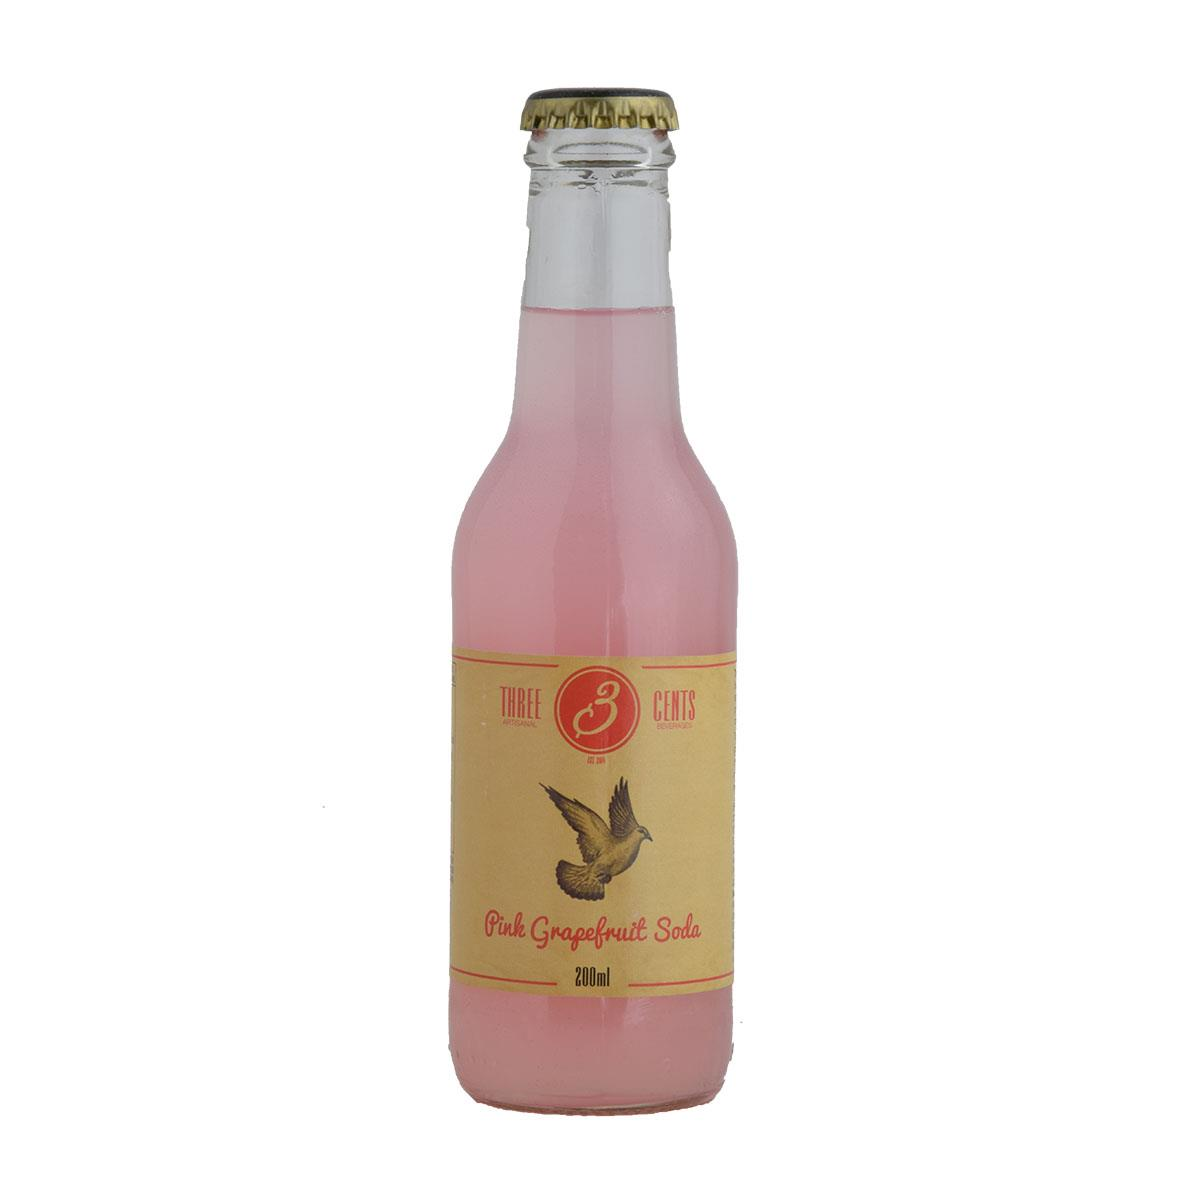 Three Cents Pink Grapefruit Σόδα 200ml